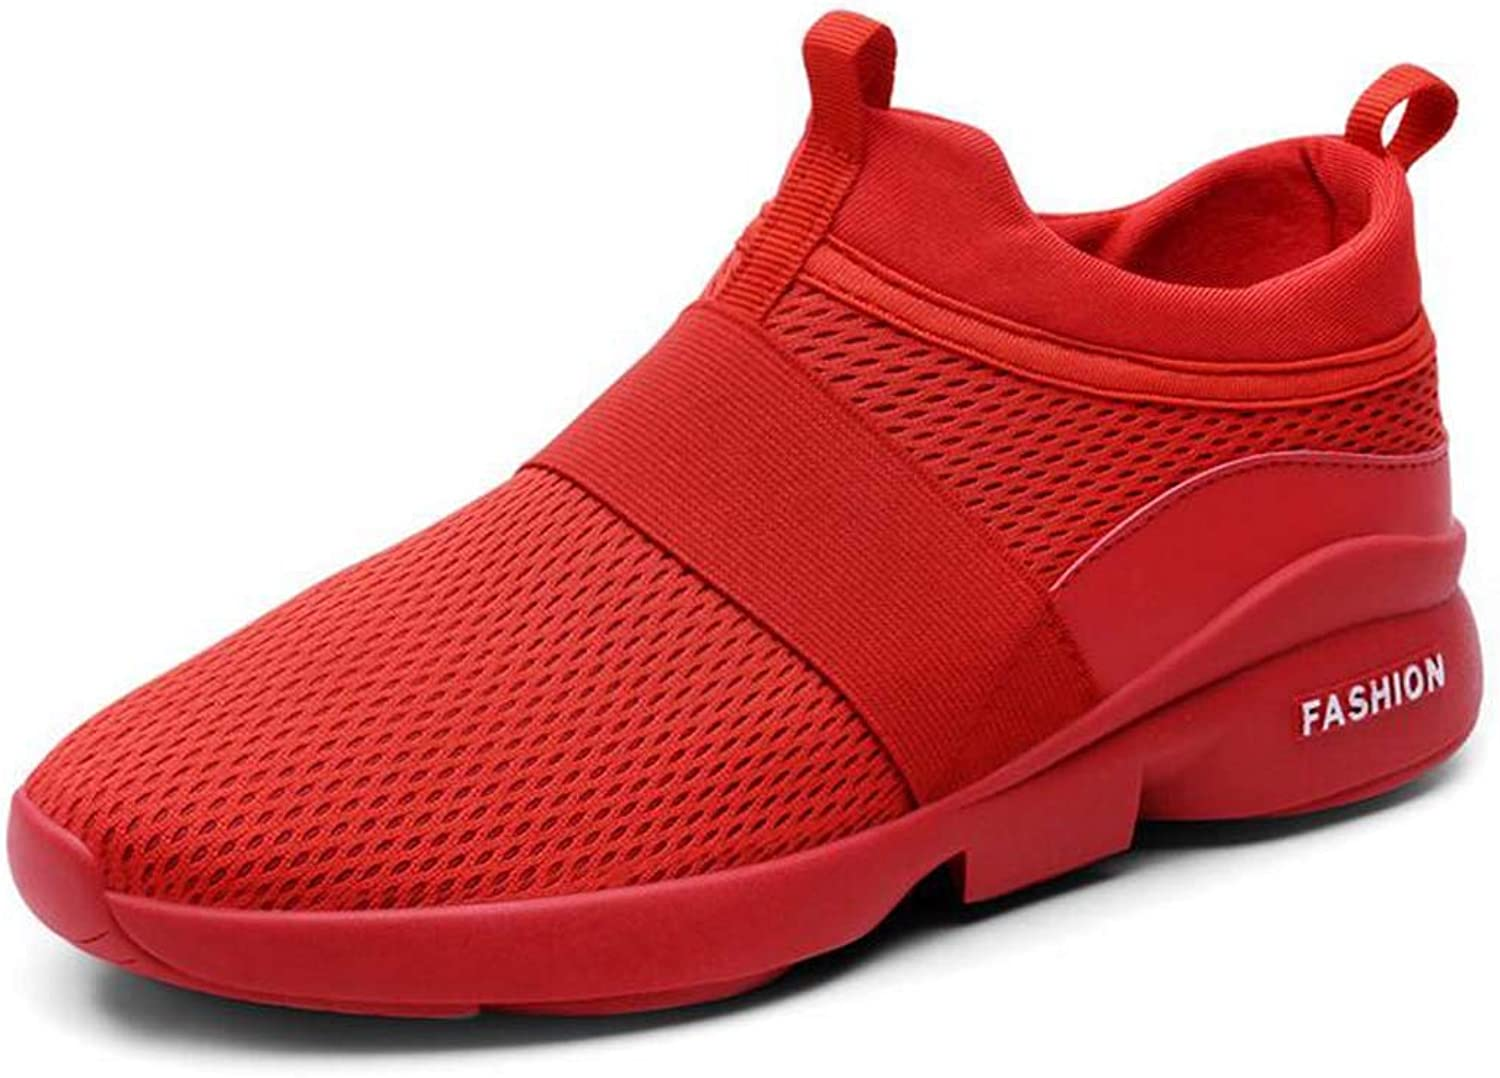 Men's Trainers, Jogging shoes, Mesh Breathable Lightweight Sneakers Outdoor Jogging Fitness,Red,43